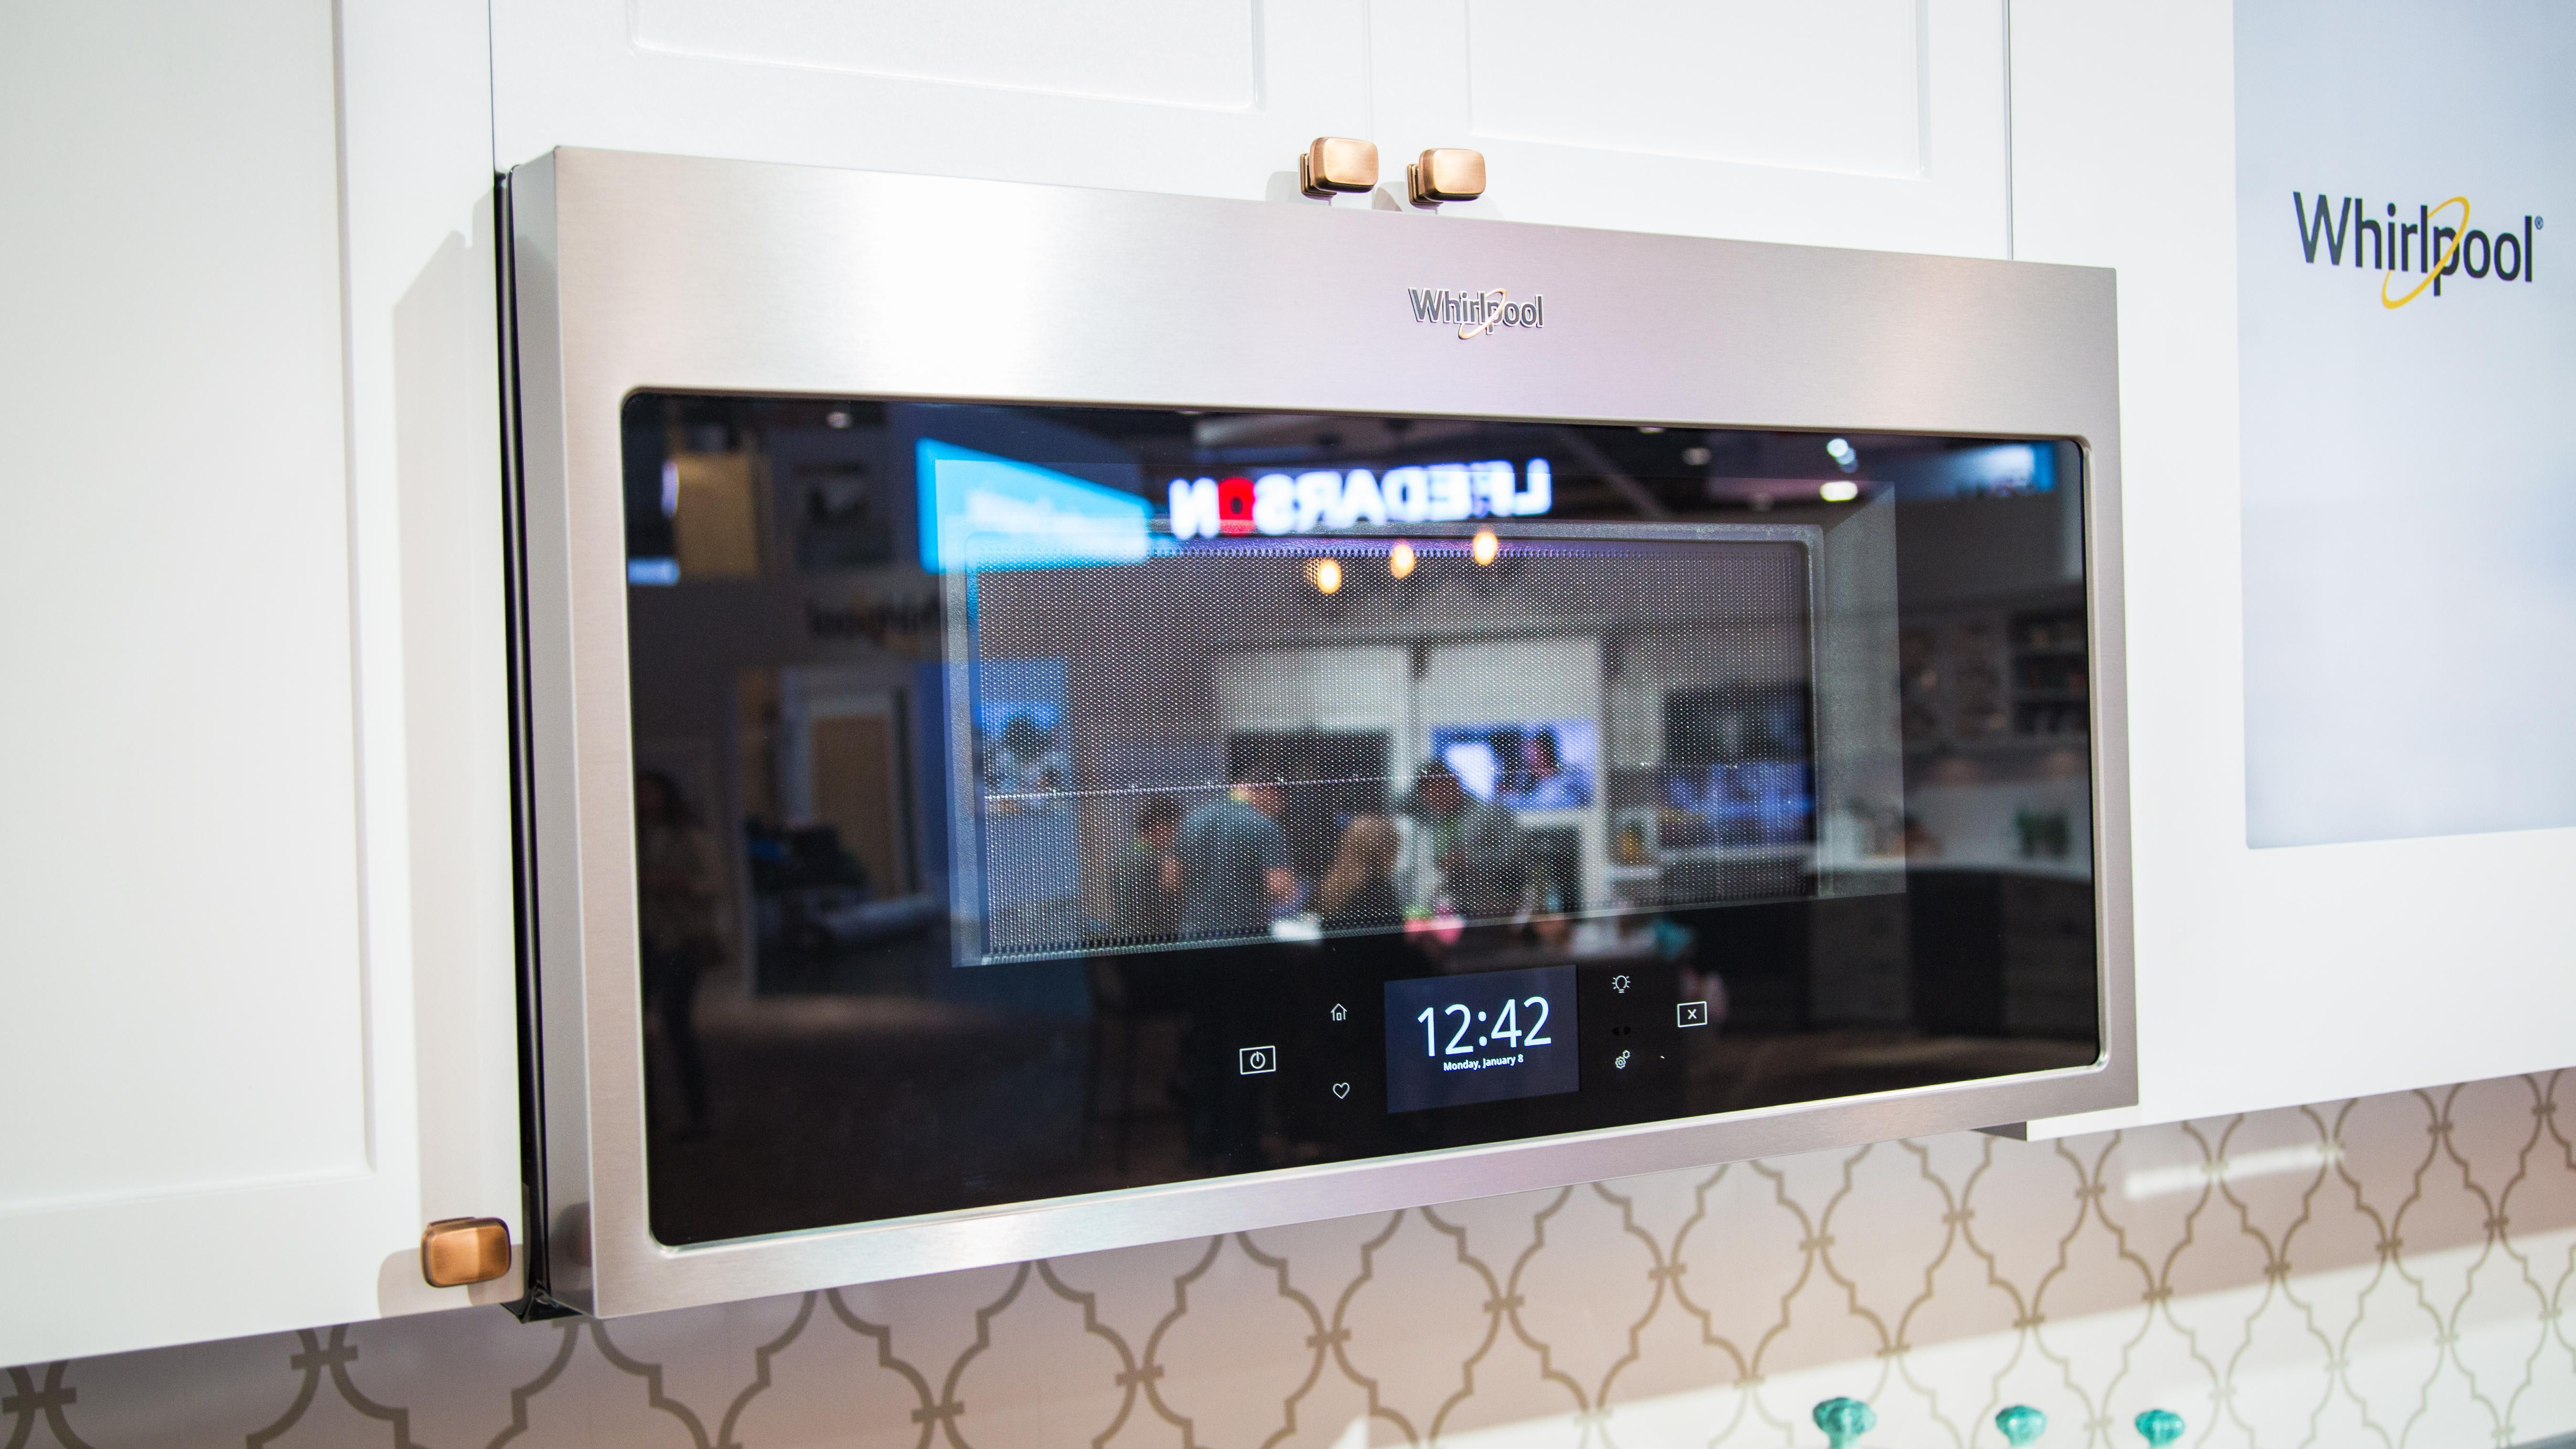 Yell at this Whirlpool microwave, and it will heat up your